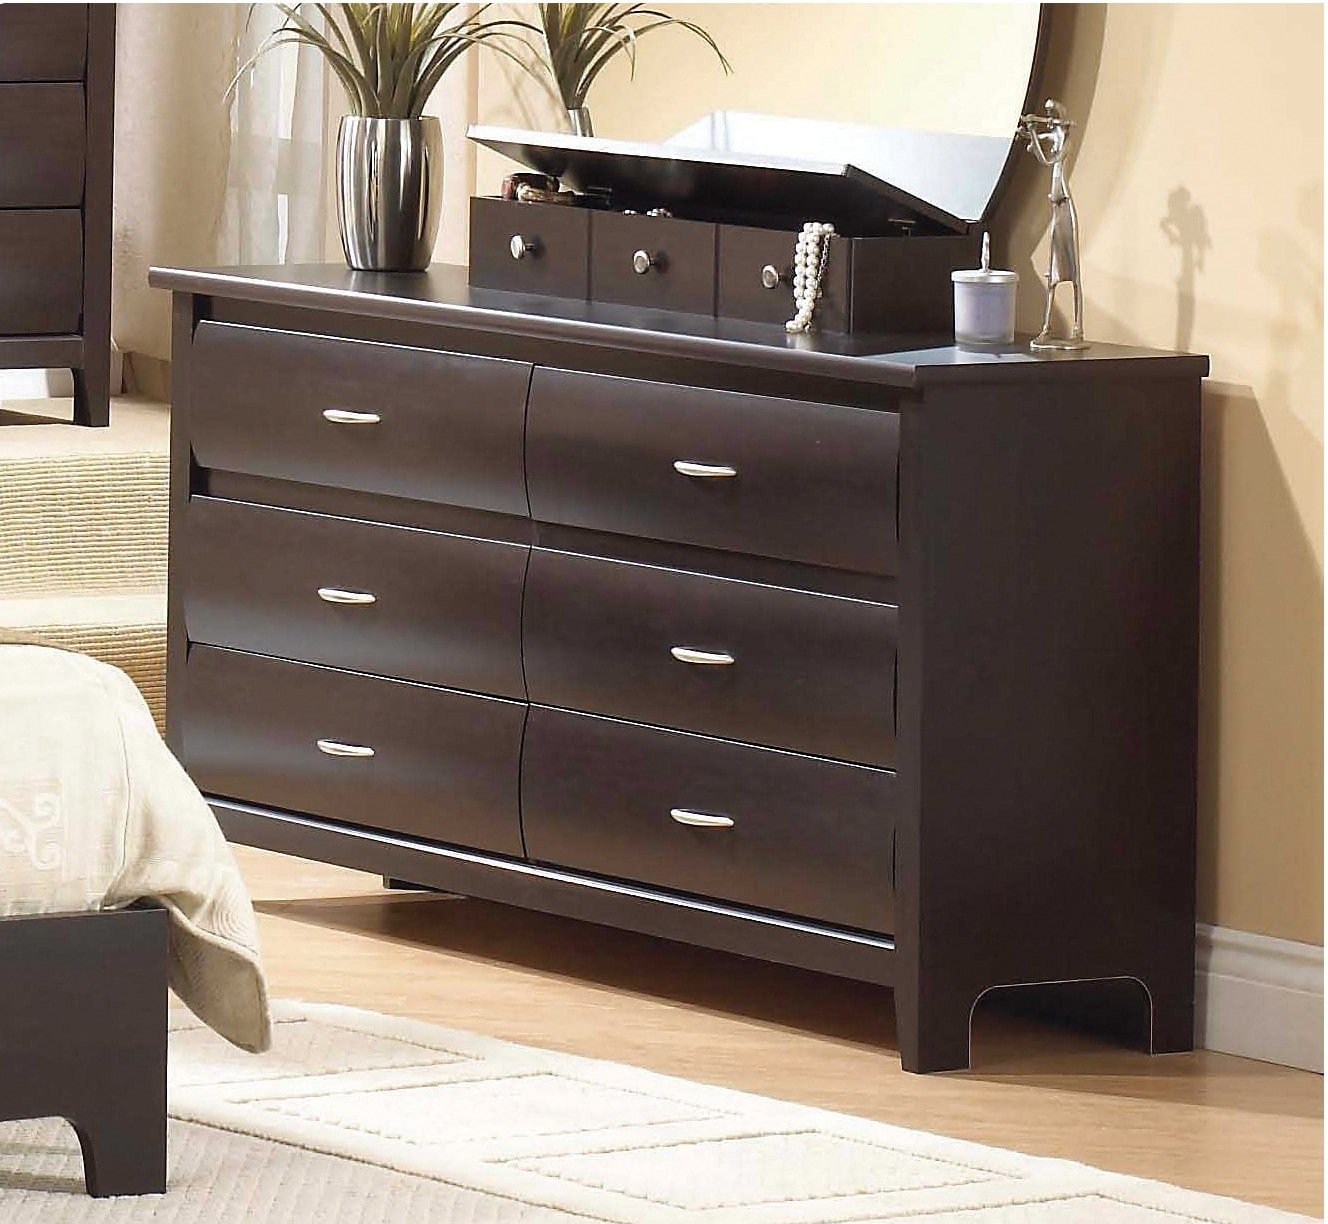 Bedroom Furniture - Mocha 6-Drawer Dresser